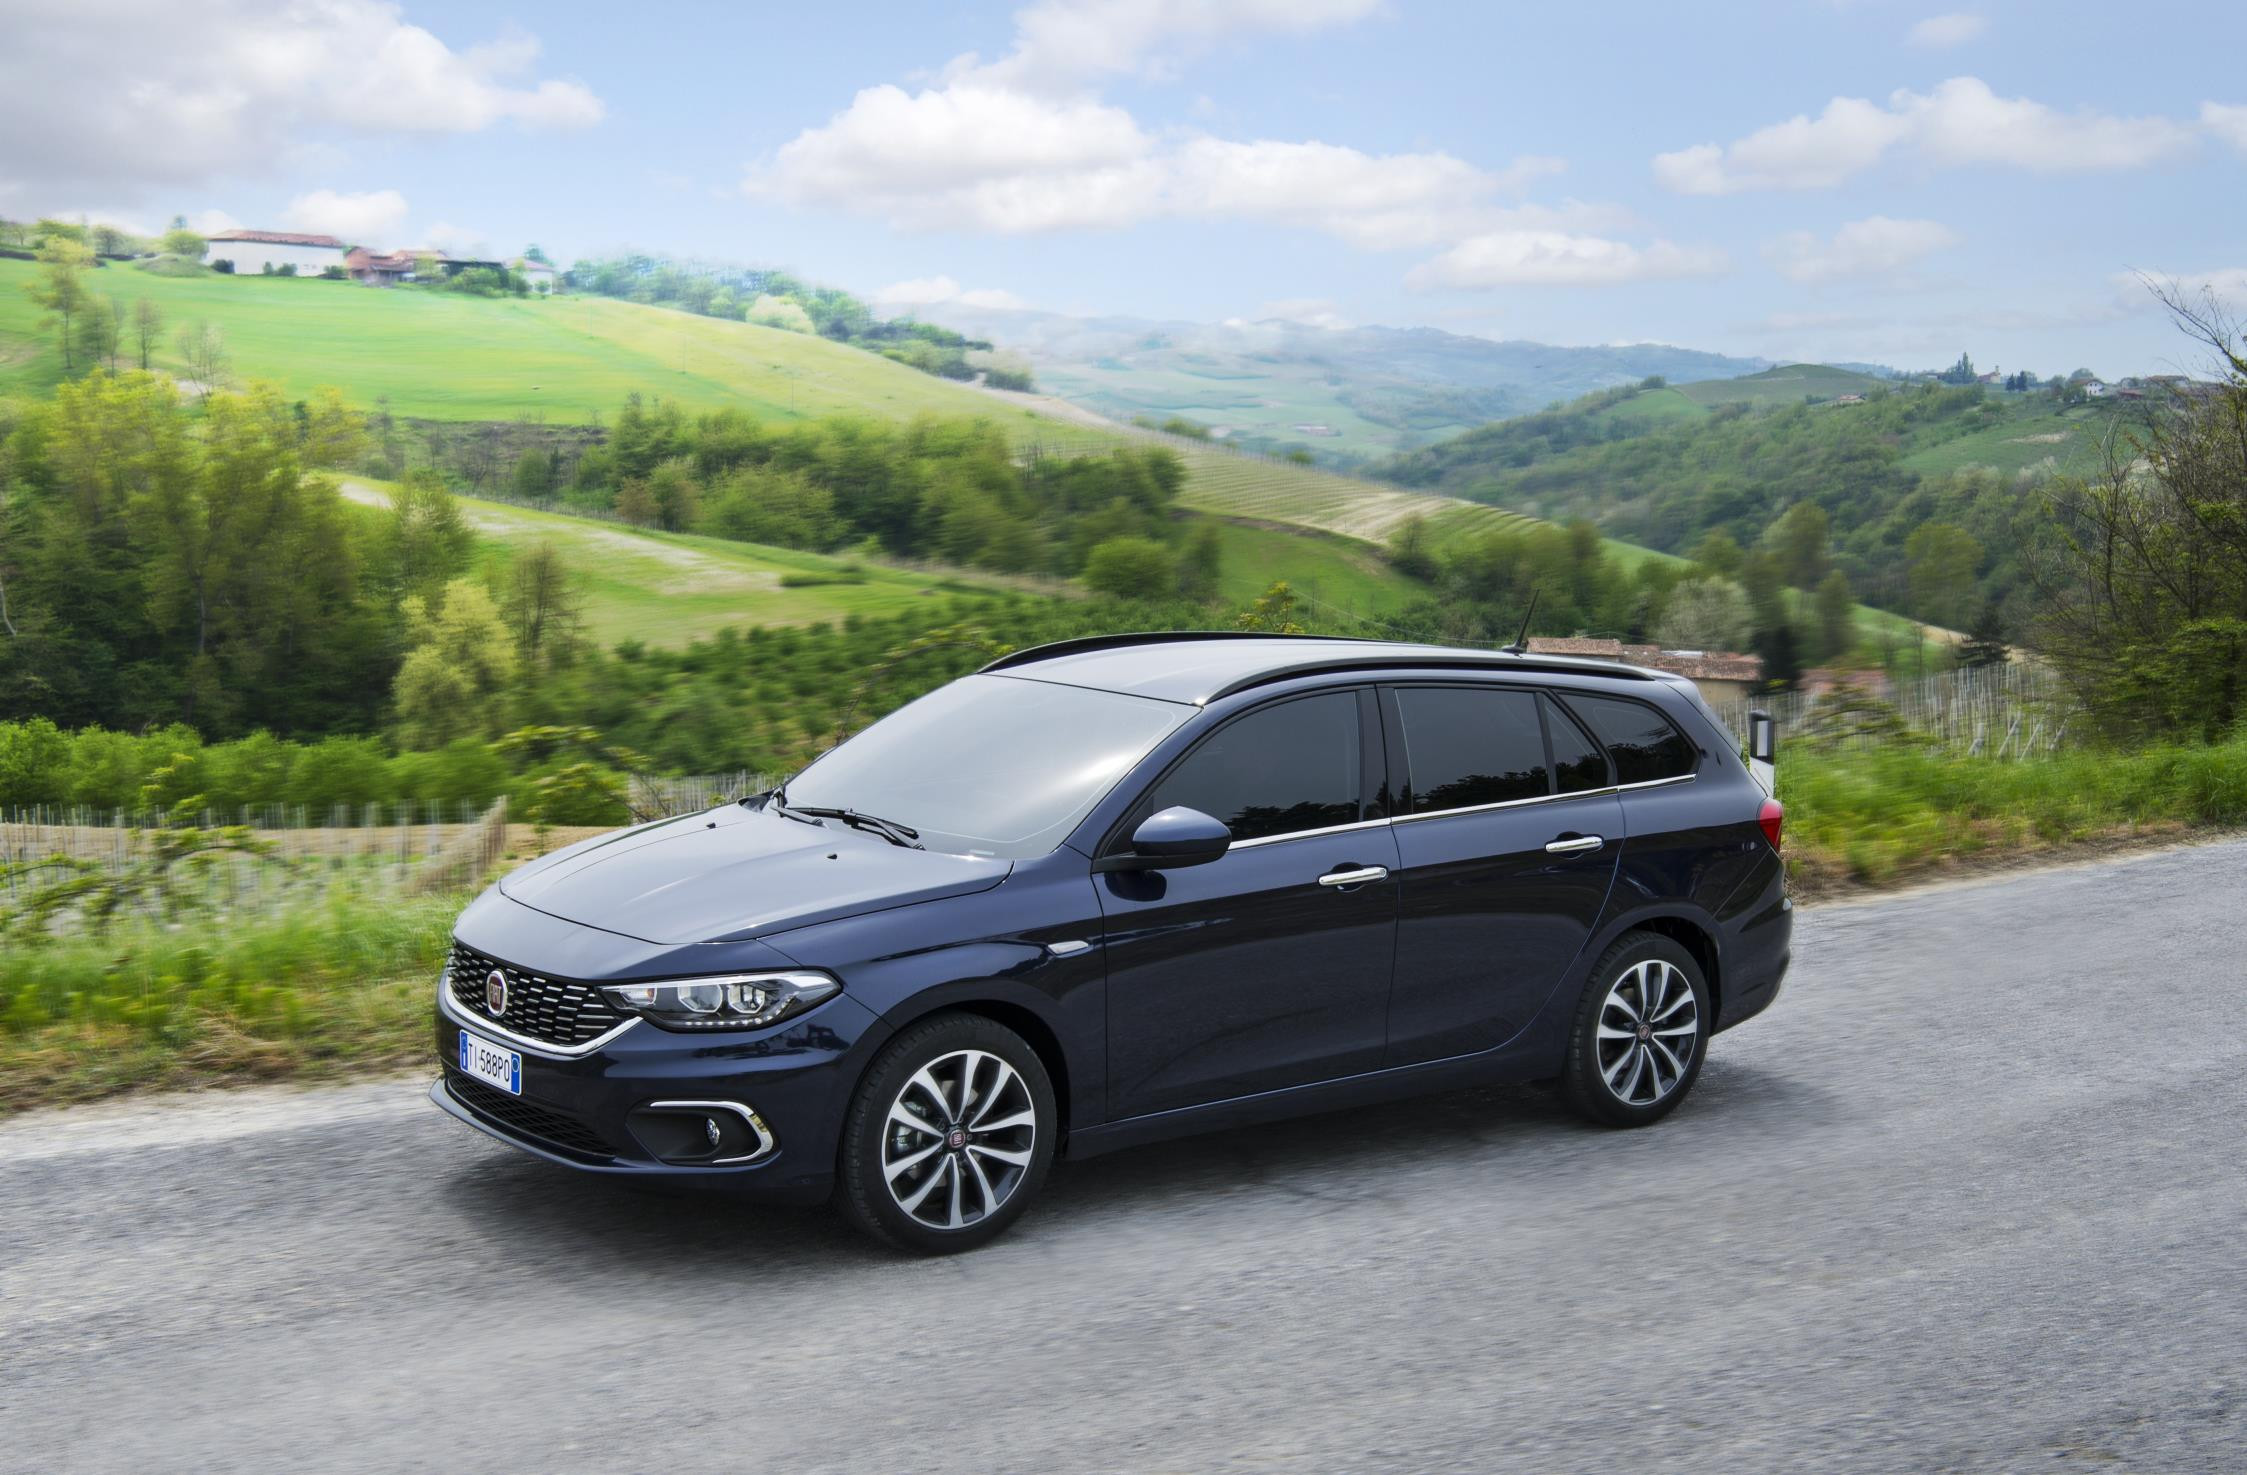 Blue Fiat Tipo Station Wagon driving through sunny countryside